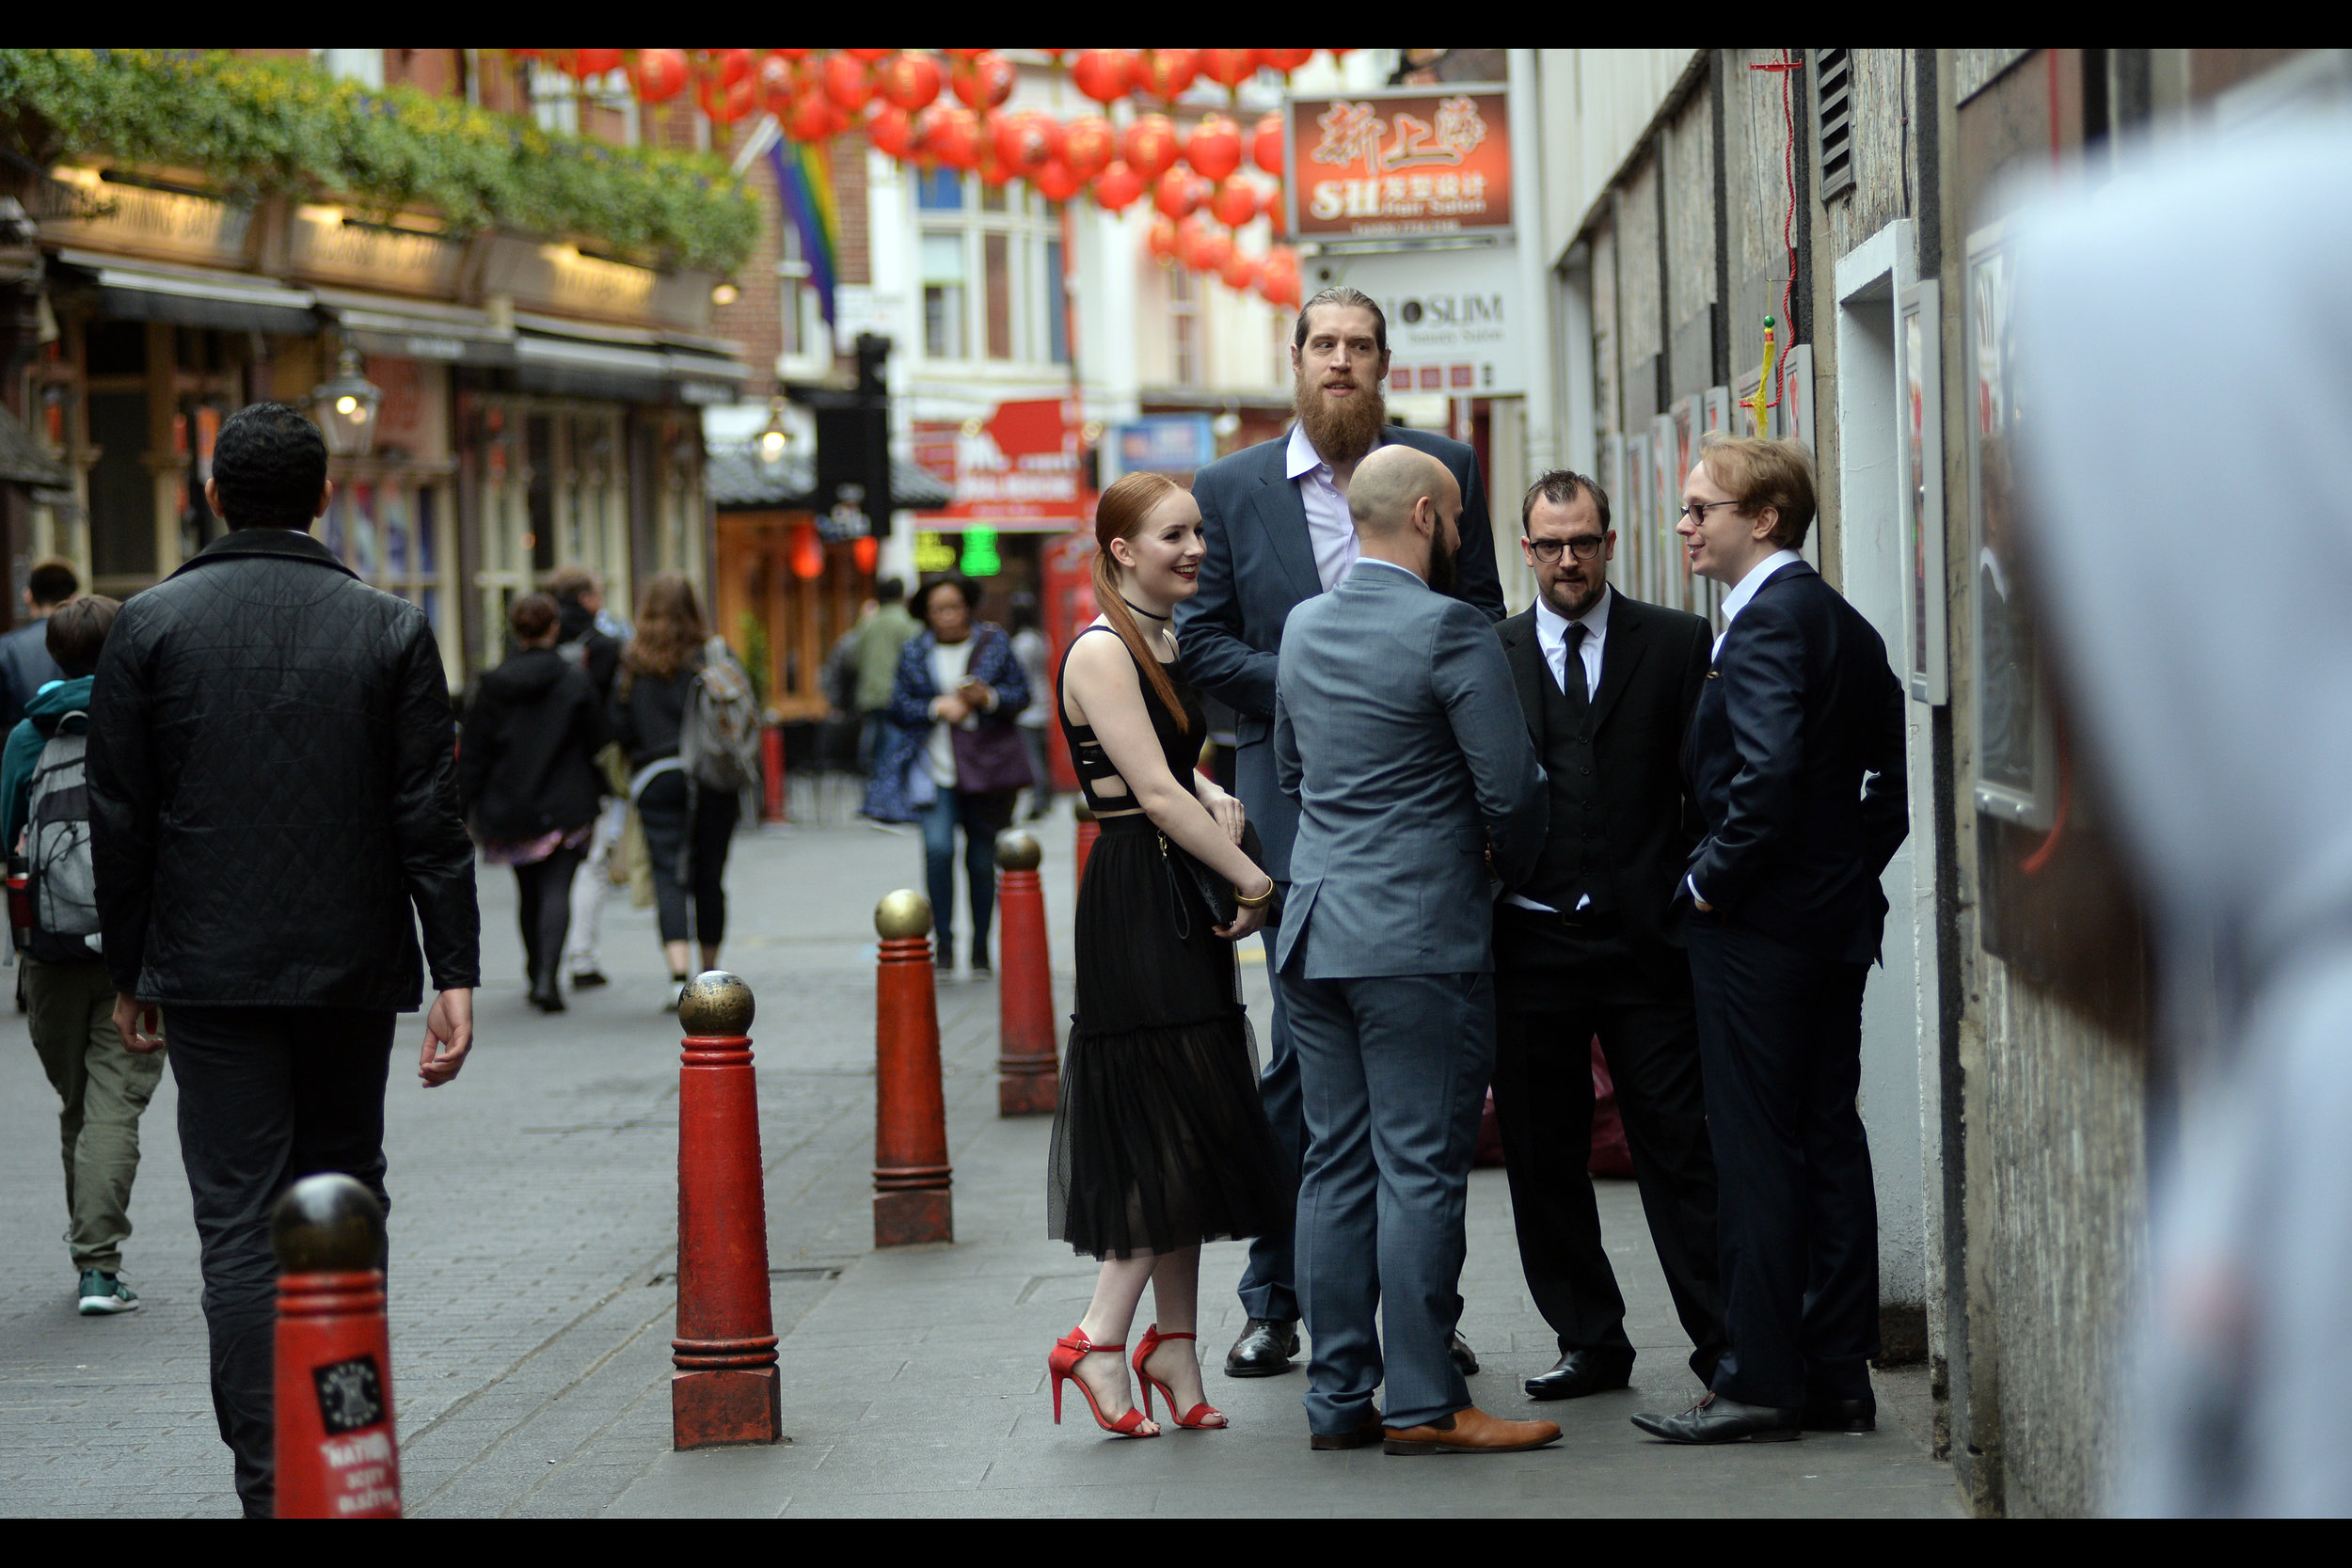 Meanwhile at the side/rear entrance, some of the cast and crew seem to have assembled. The man on the far right is Ben Mansbridge, I believe (uncredited as 'Constable No.3' in 2012's 'Les Miserables') while the man facing the camera second from the right is director Gene Fallaize.